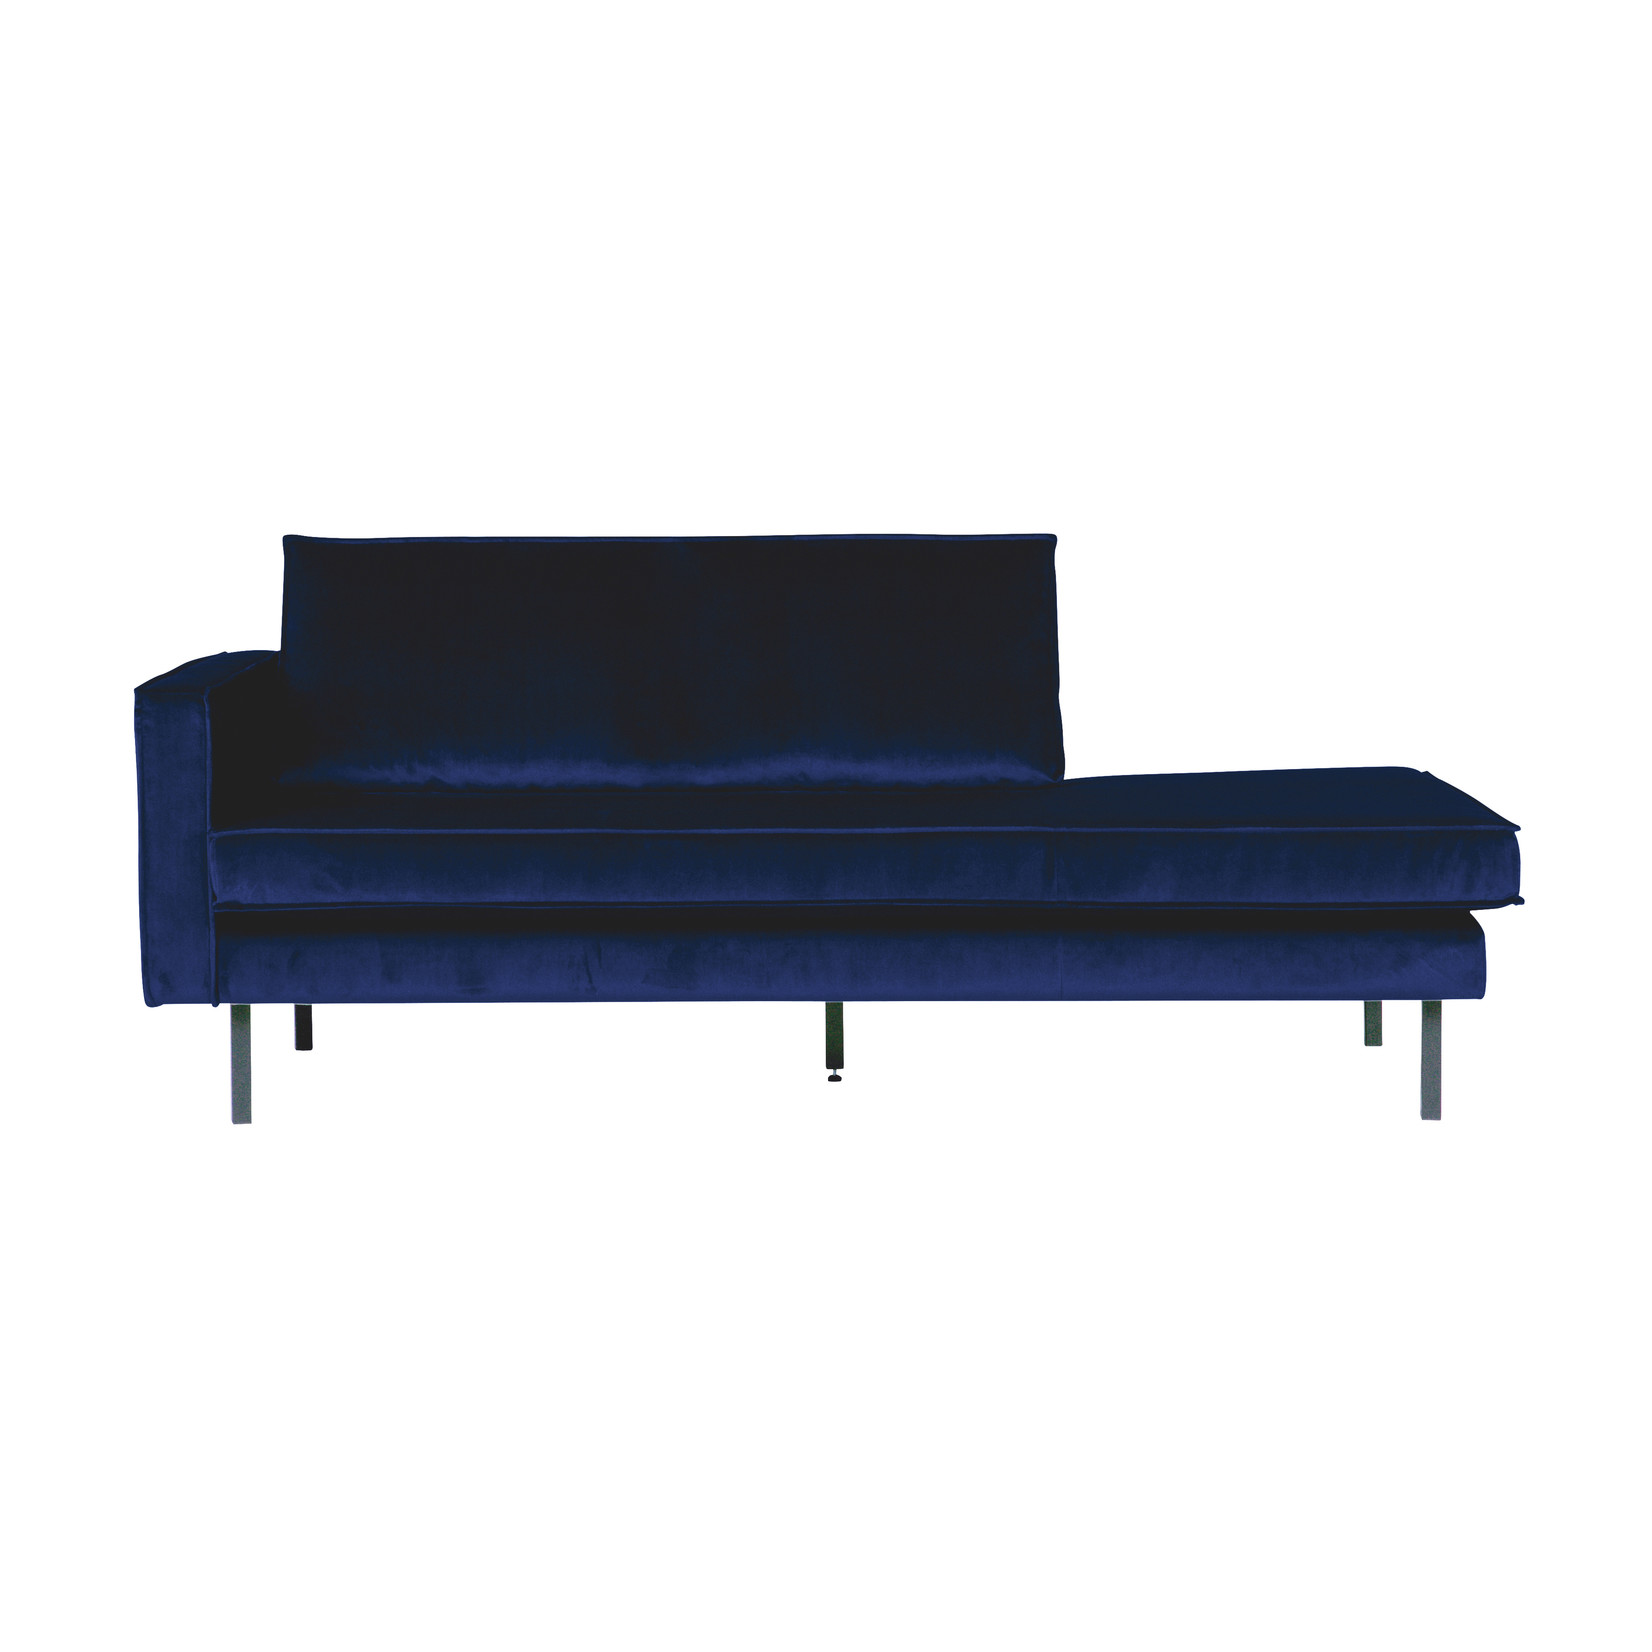 Be Pure Home Rodeo Daybed Left Velvet Dark Blue Nightshade